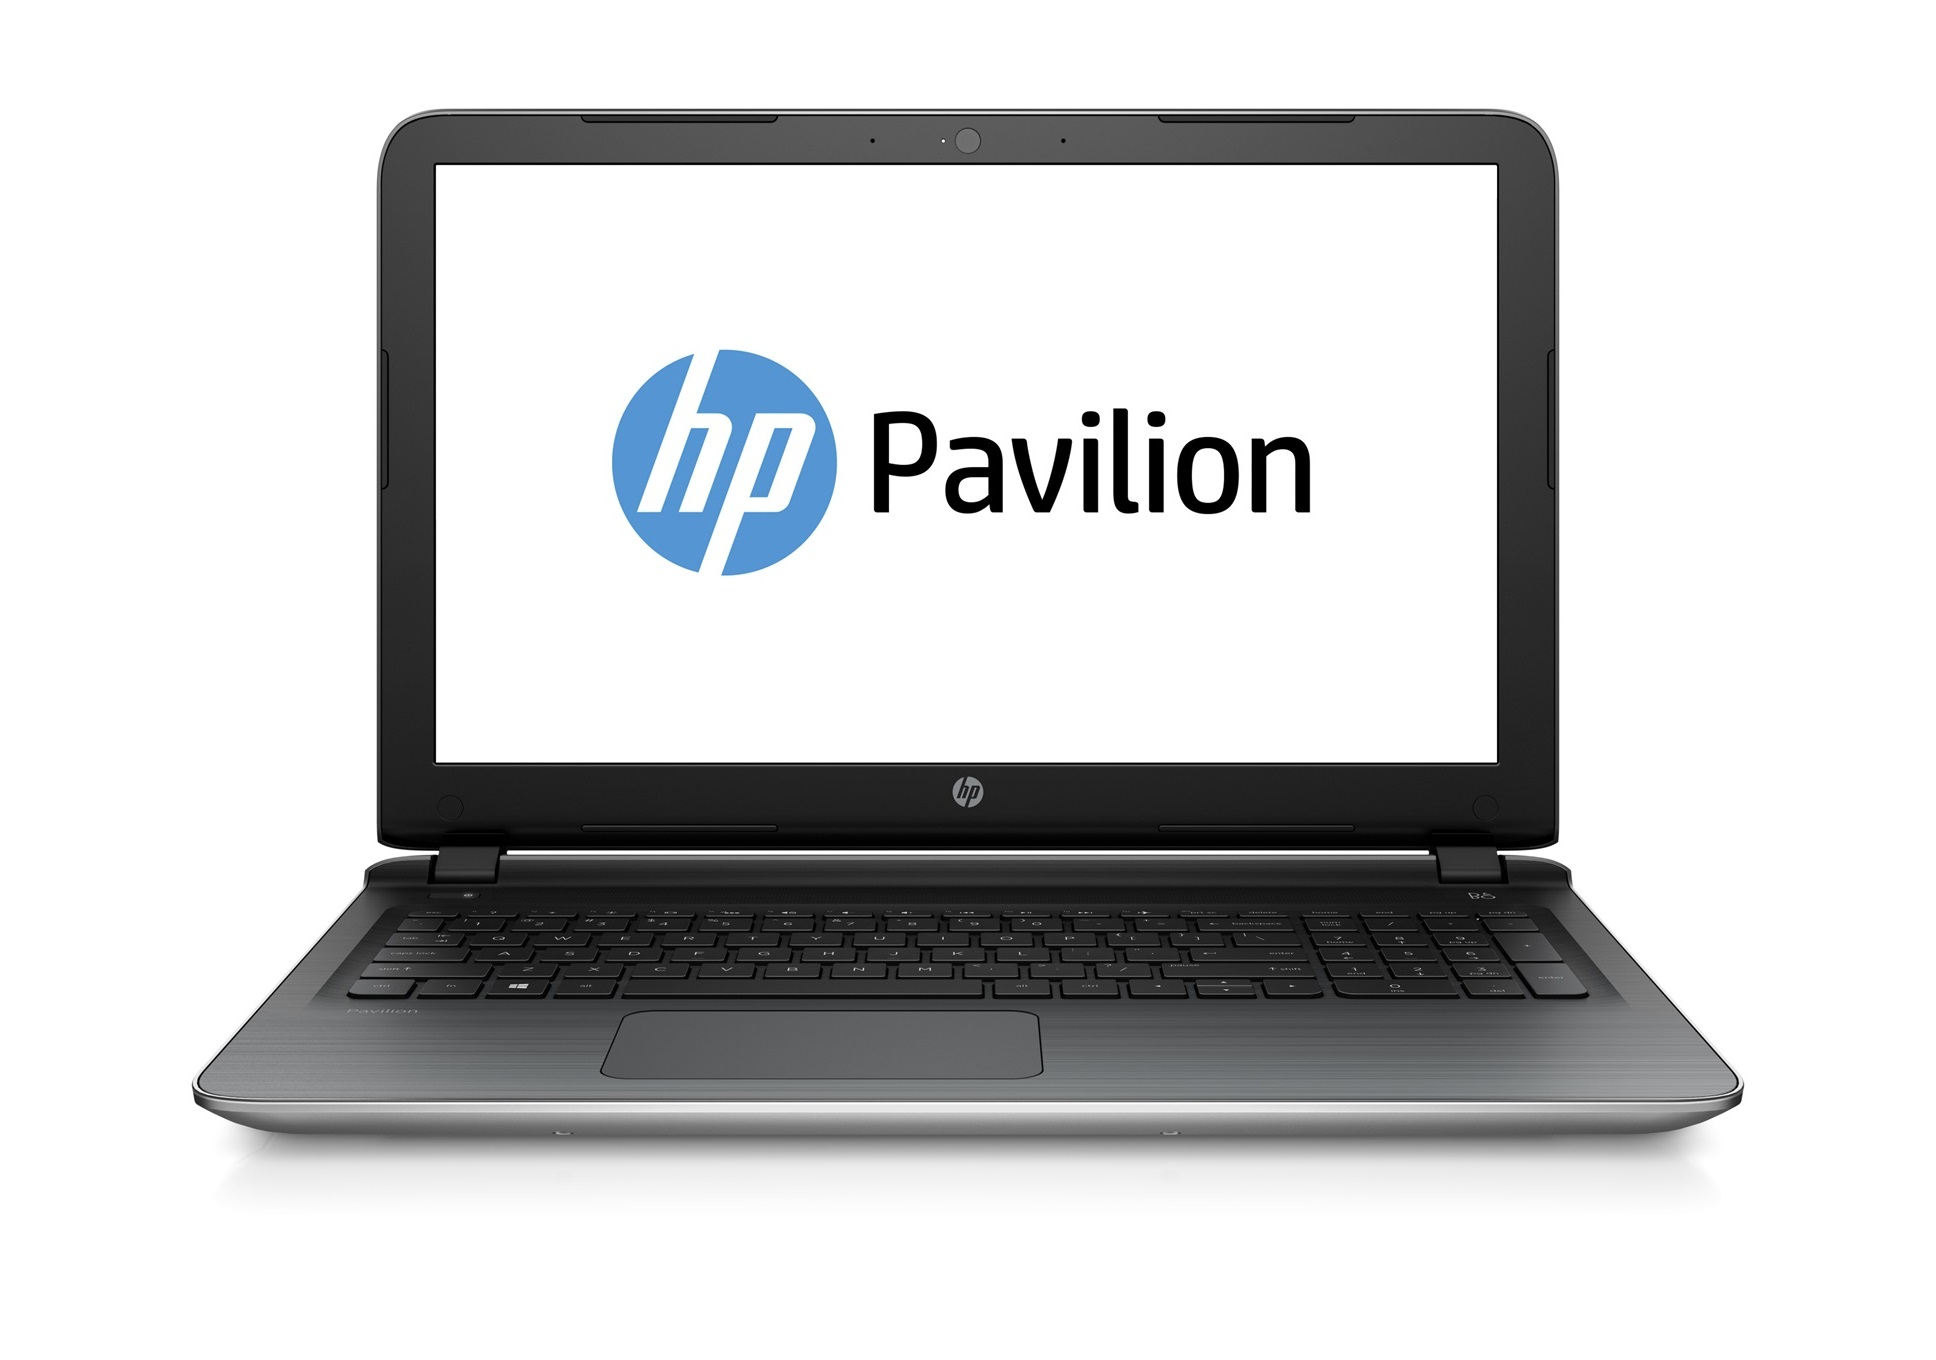 hp pavilion 15 ab292nr 15 6 laptop intel core i7 6700hq 16gb ram 1tb grade b 889894597045 ebay. Black Bedroom Furniture Sets. Home Design Ideas